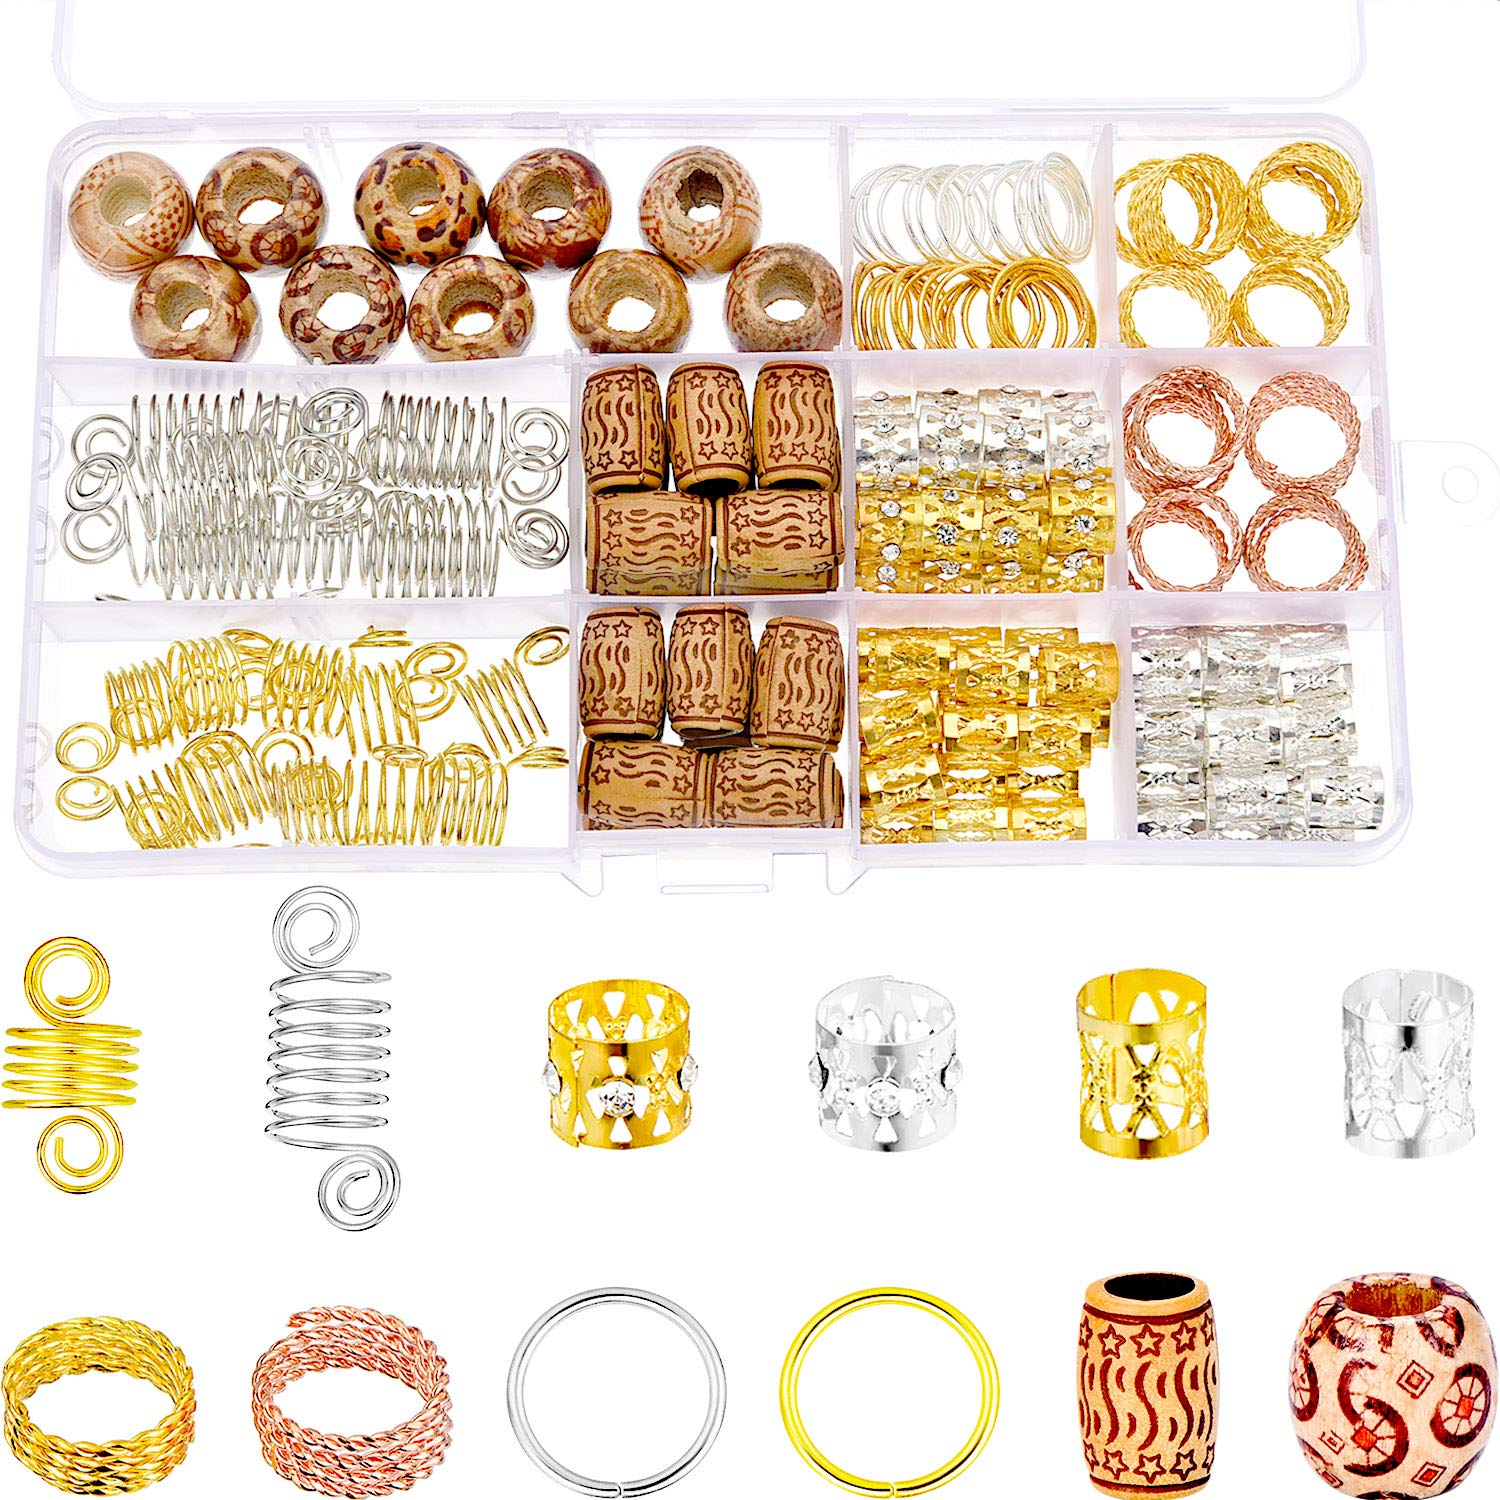 170 Pieces Aluminum Dreadlocks Beads Metal Cuffs Hair Wraps Natural Painted Wood Beads Hair Braiding Beads Jewelry Hair Decoration Accessories with Storage Box TecUnite